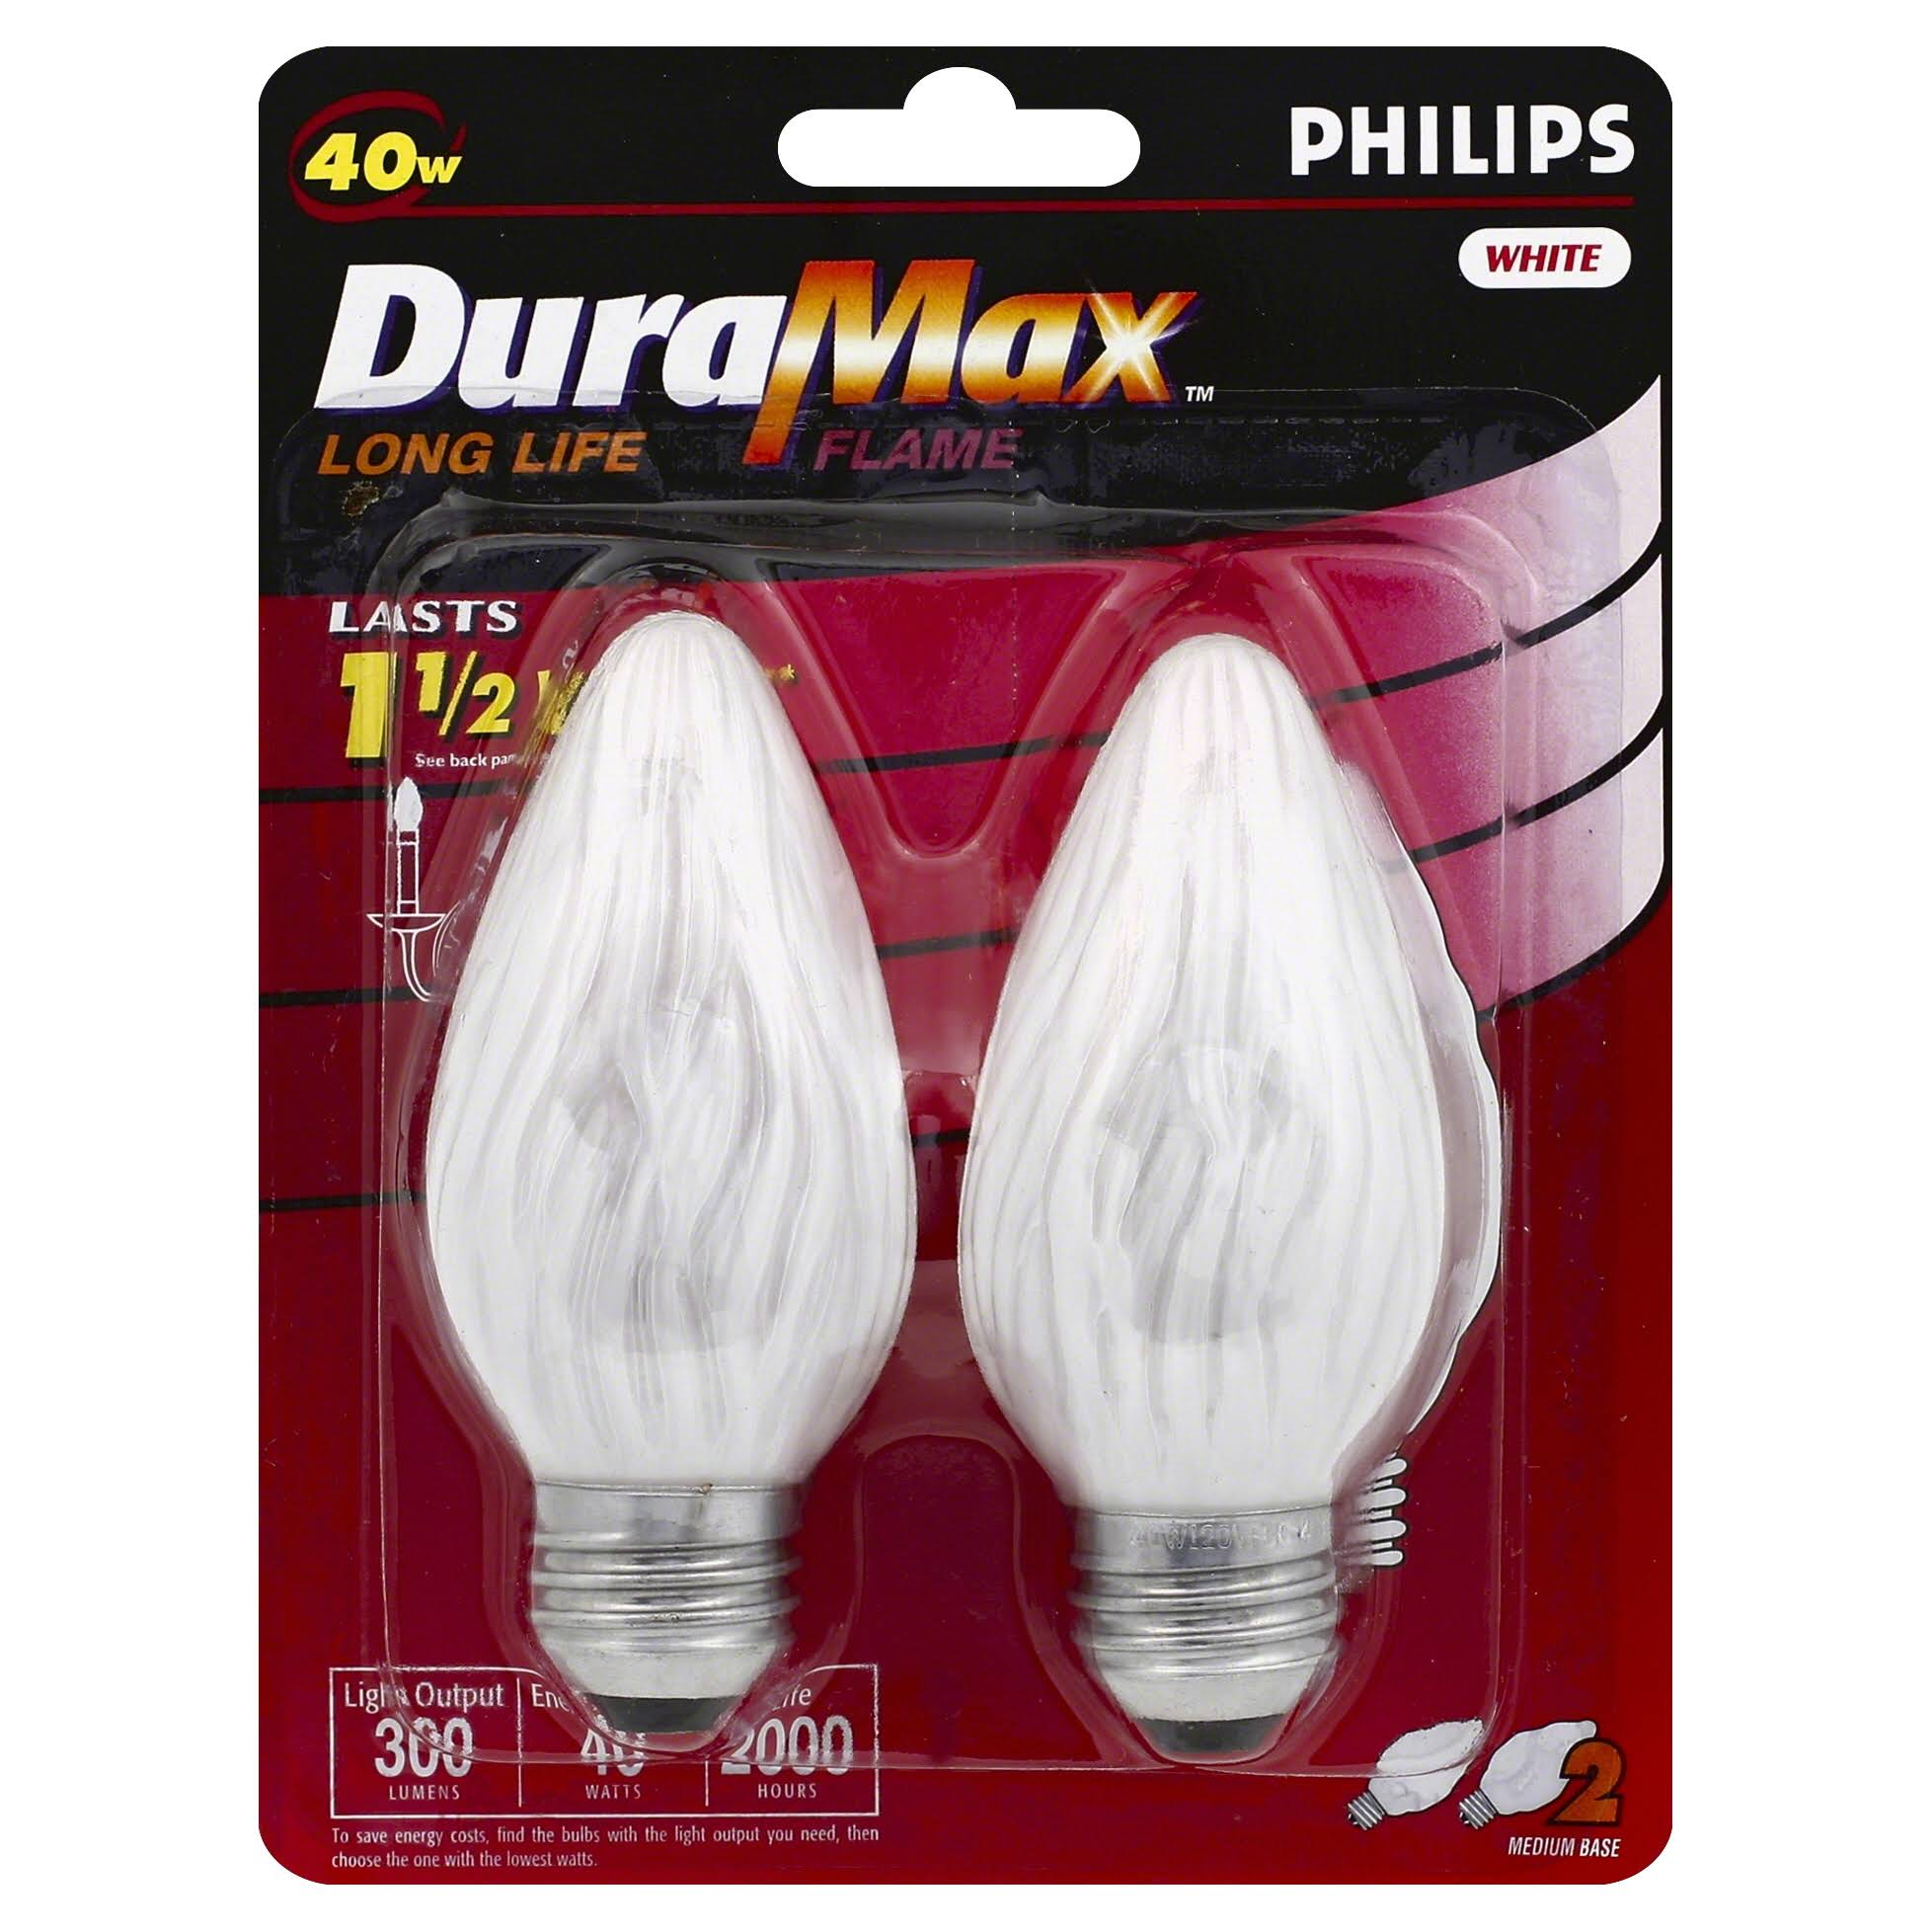 Philips Duramax Long Life Flame Medium Base F15 Light Bulb - White